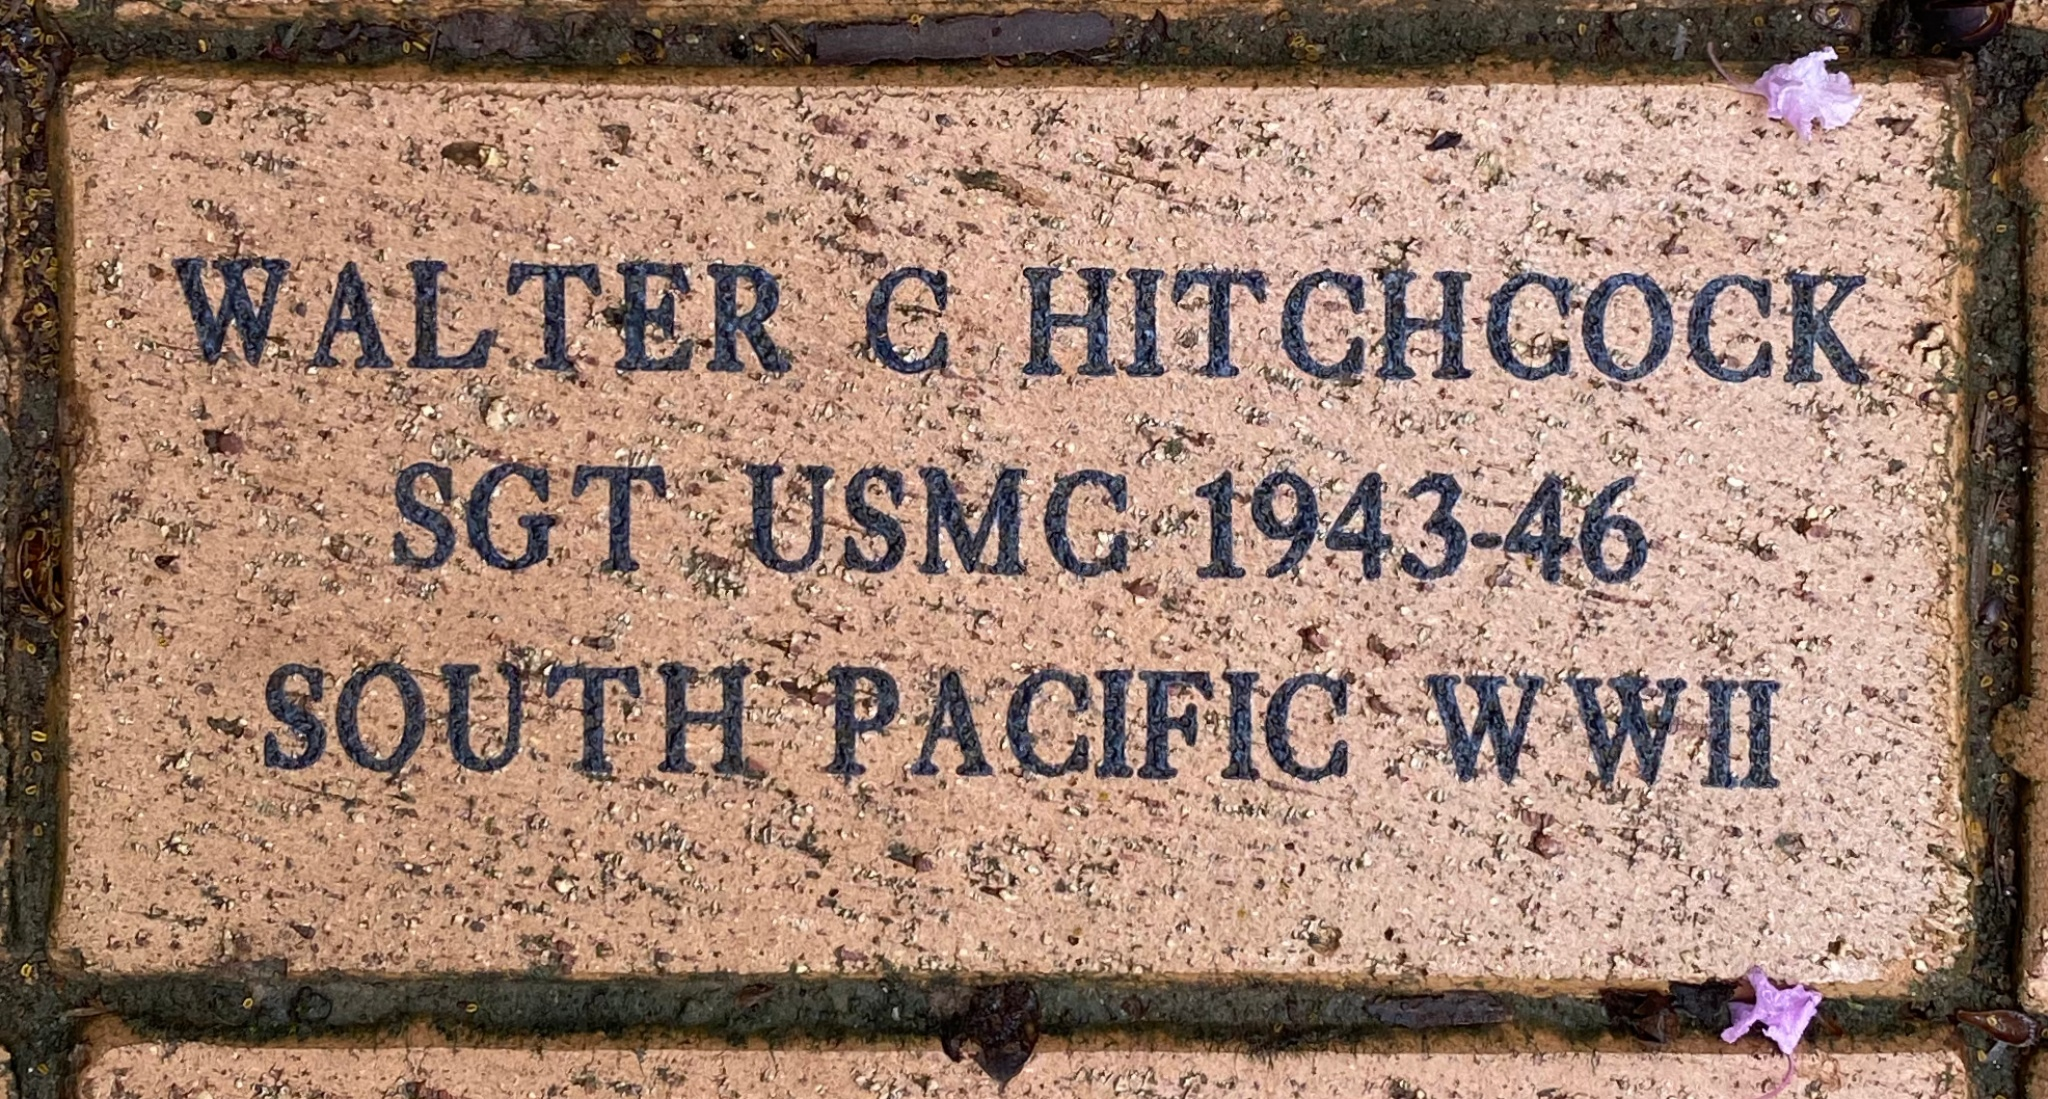 WALTER C HITCHCOCK SGT USMC 1943-46 SOUTH PACIFIC WWII